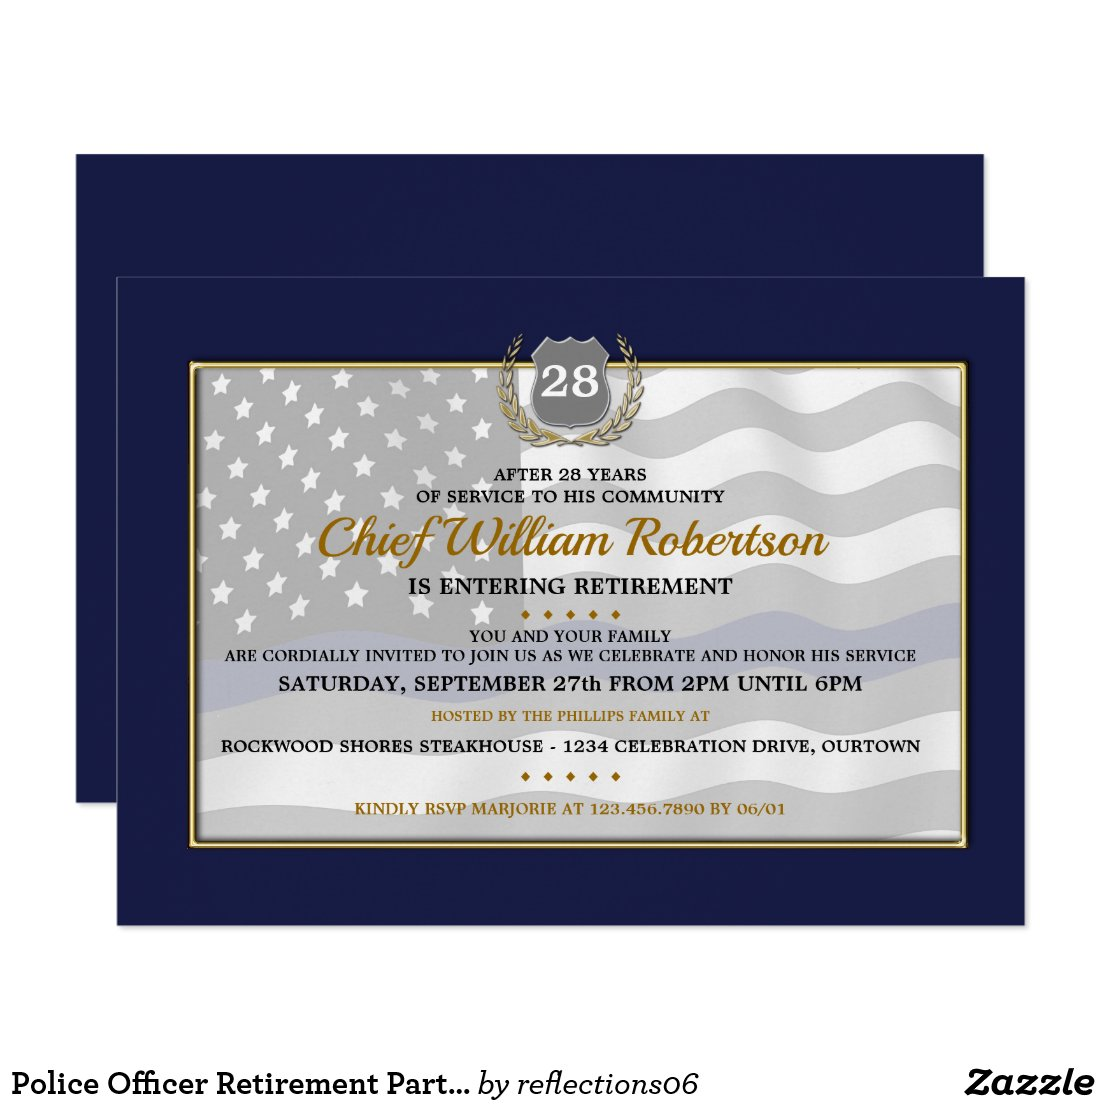 Police Officer Retirement Party Invitations